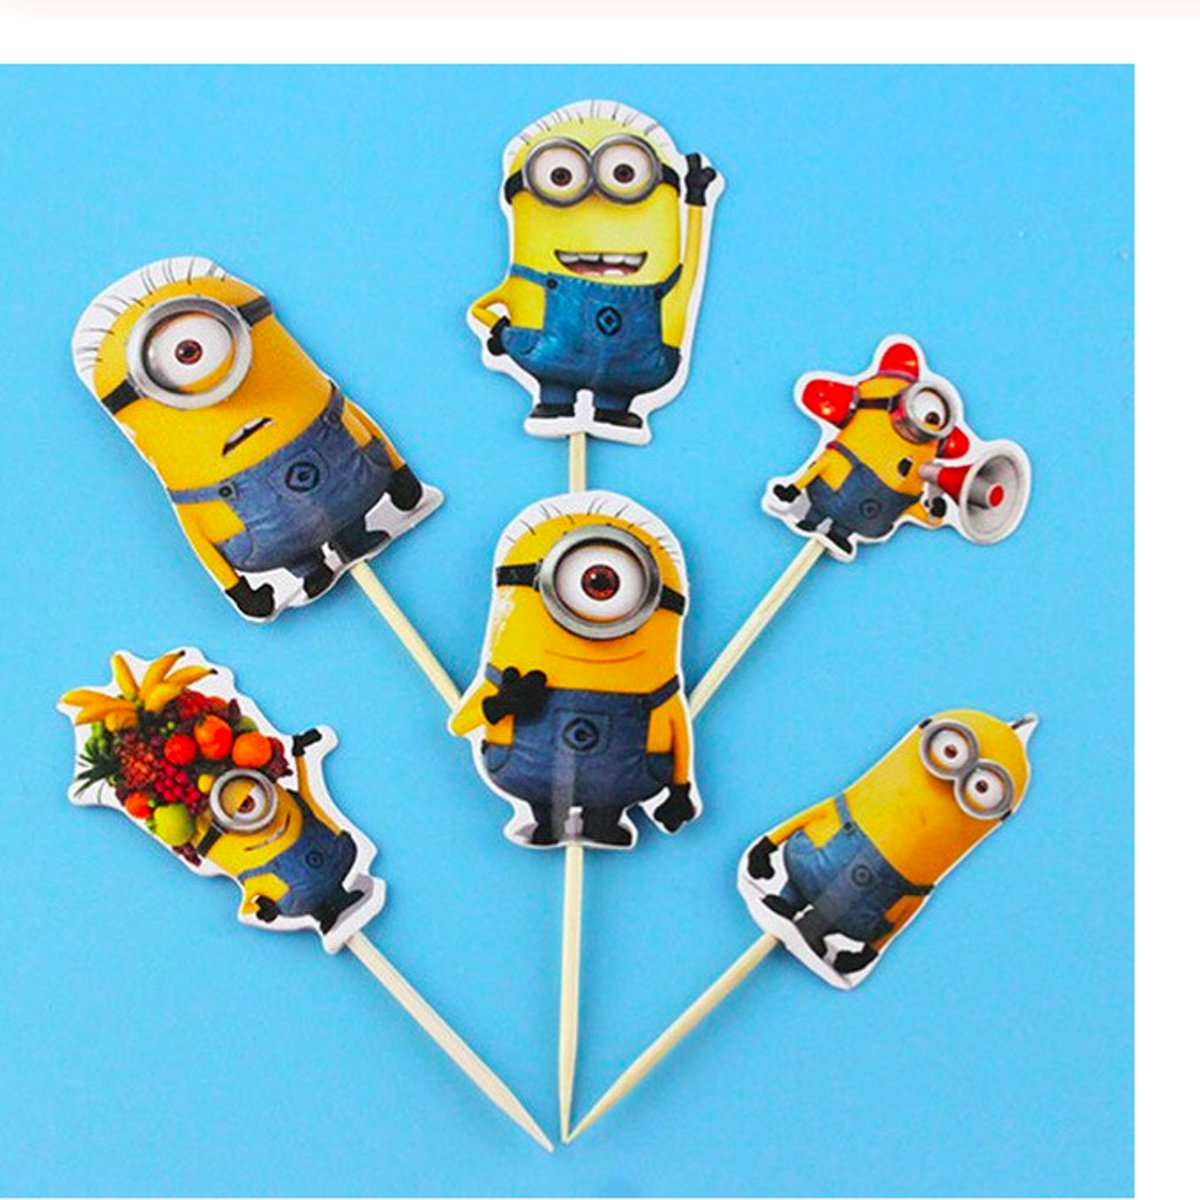 ProductsGoods - 48 x Leuke Minions coctailprikkers